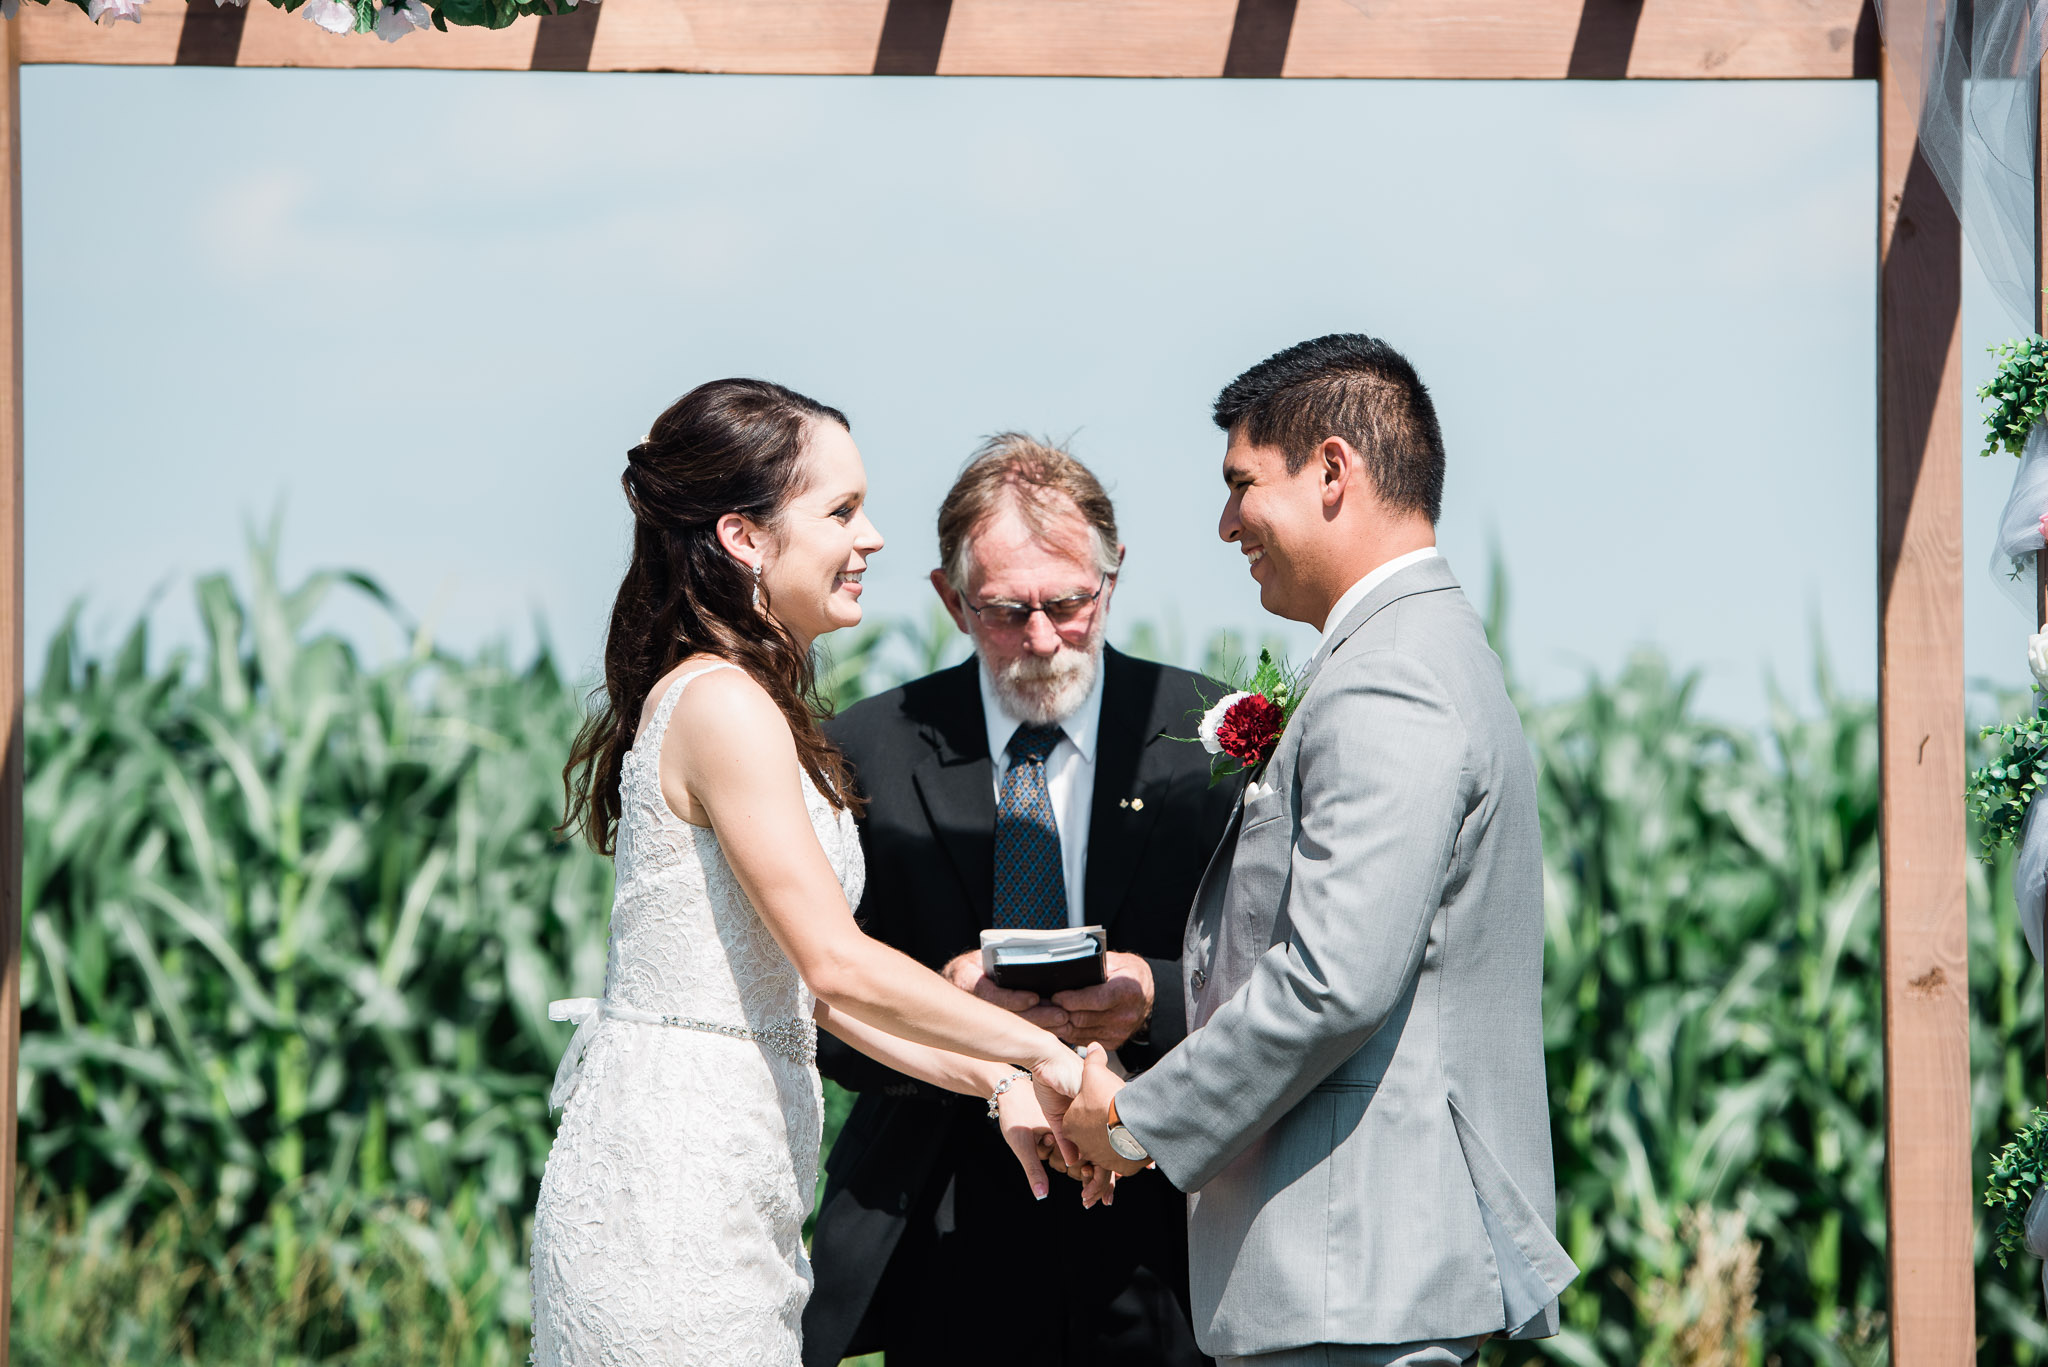 Outdoor Wedding Ceremony, Pittsburgh Wedding Photographer, The Event Barn at Highland Farms, Somerset PA-9687.jpg